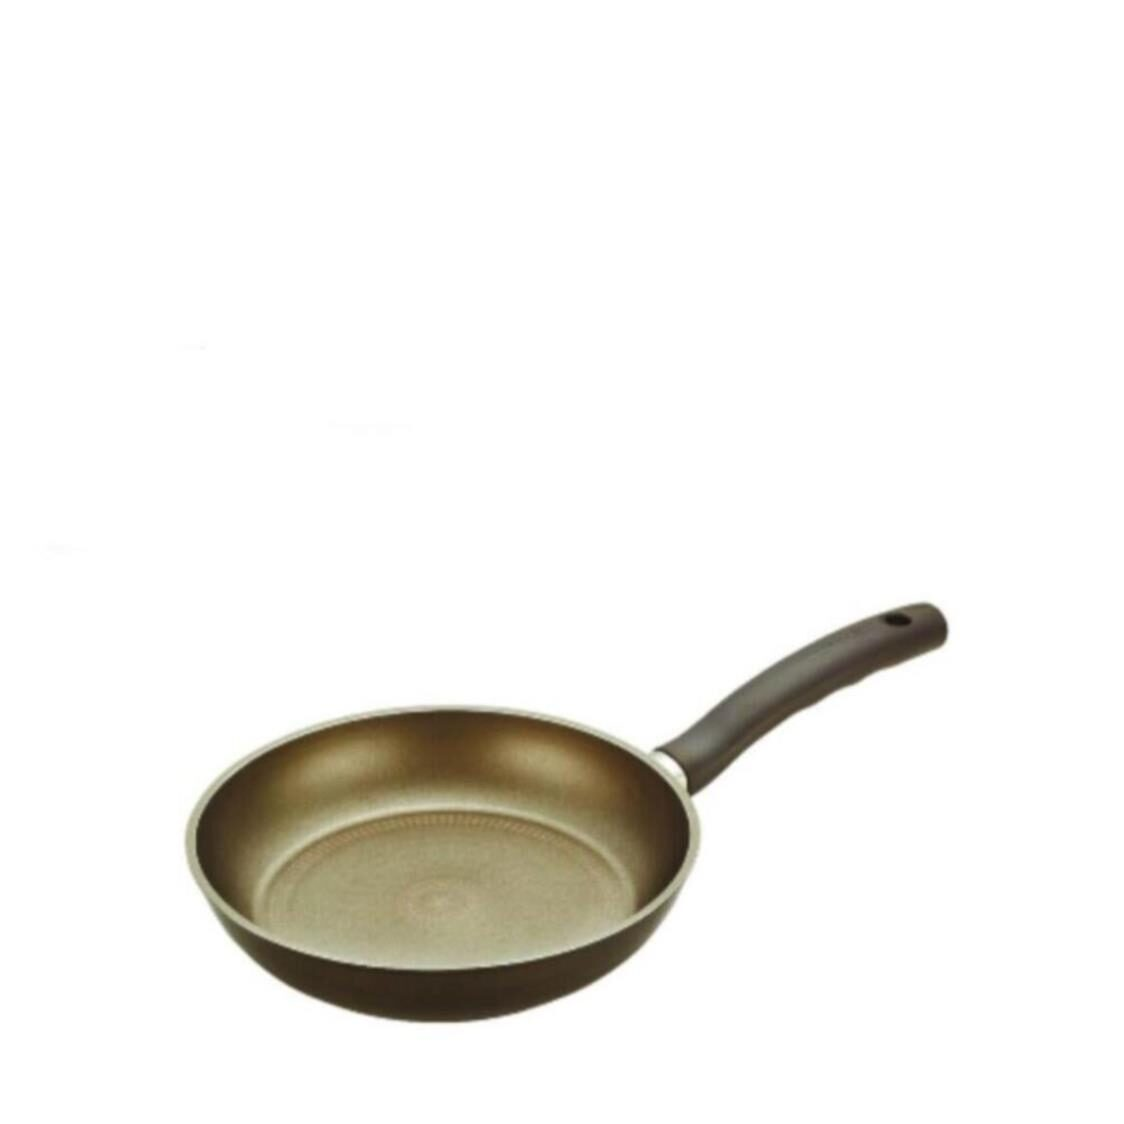 Happycall IH Gold 24cm Frying Pan Made In Korea 3001-0150